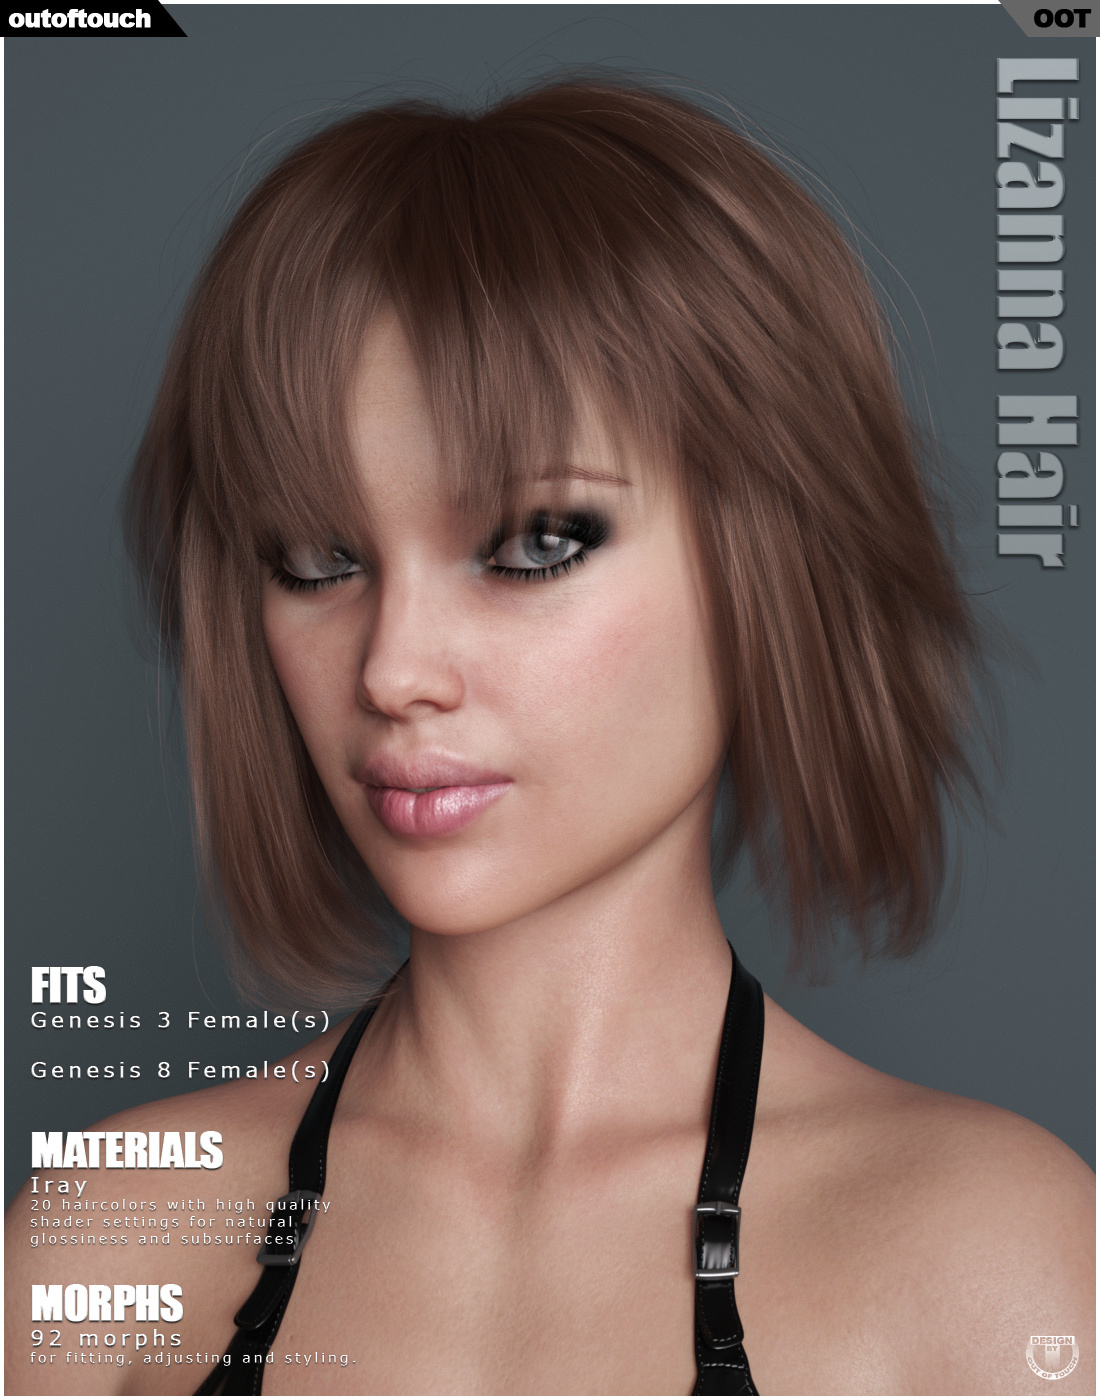 Lizanna Hair for Genesis 3 and 8 Females